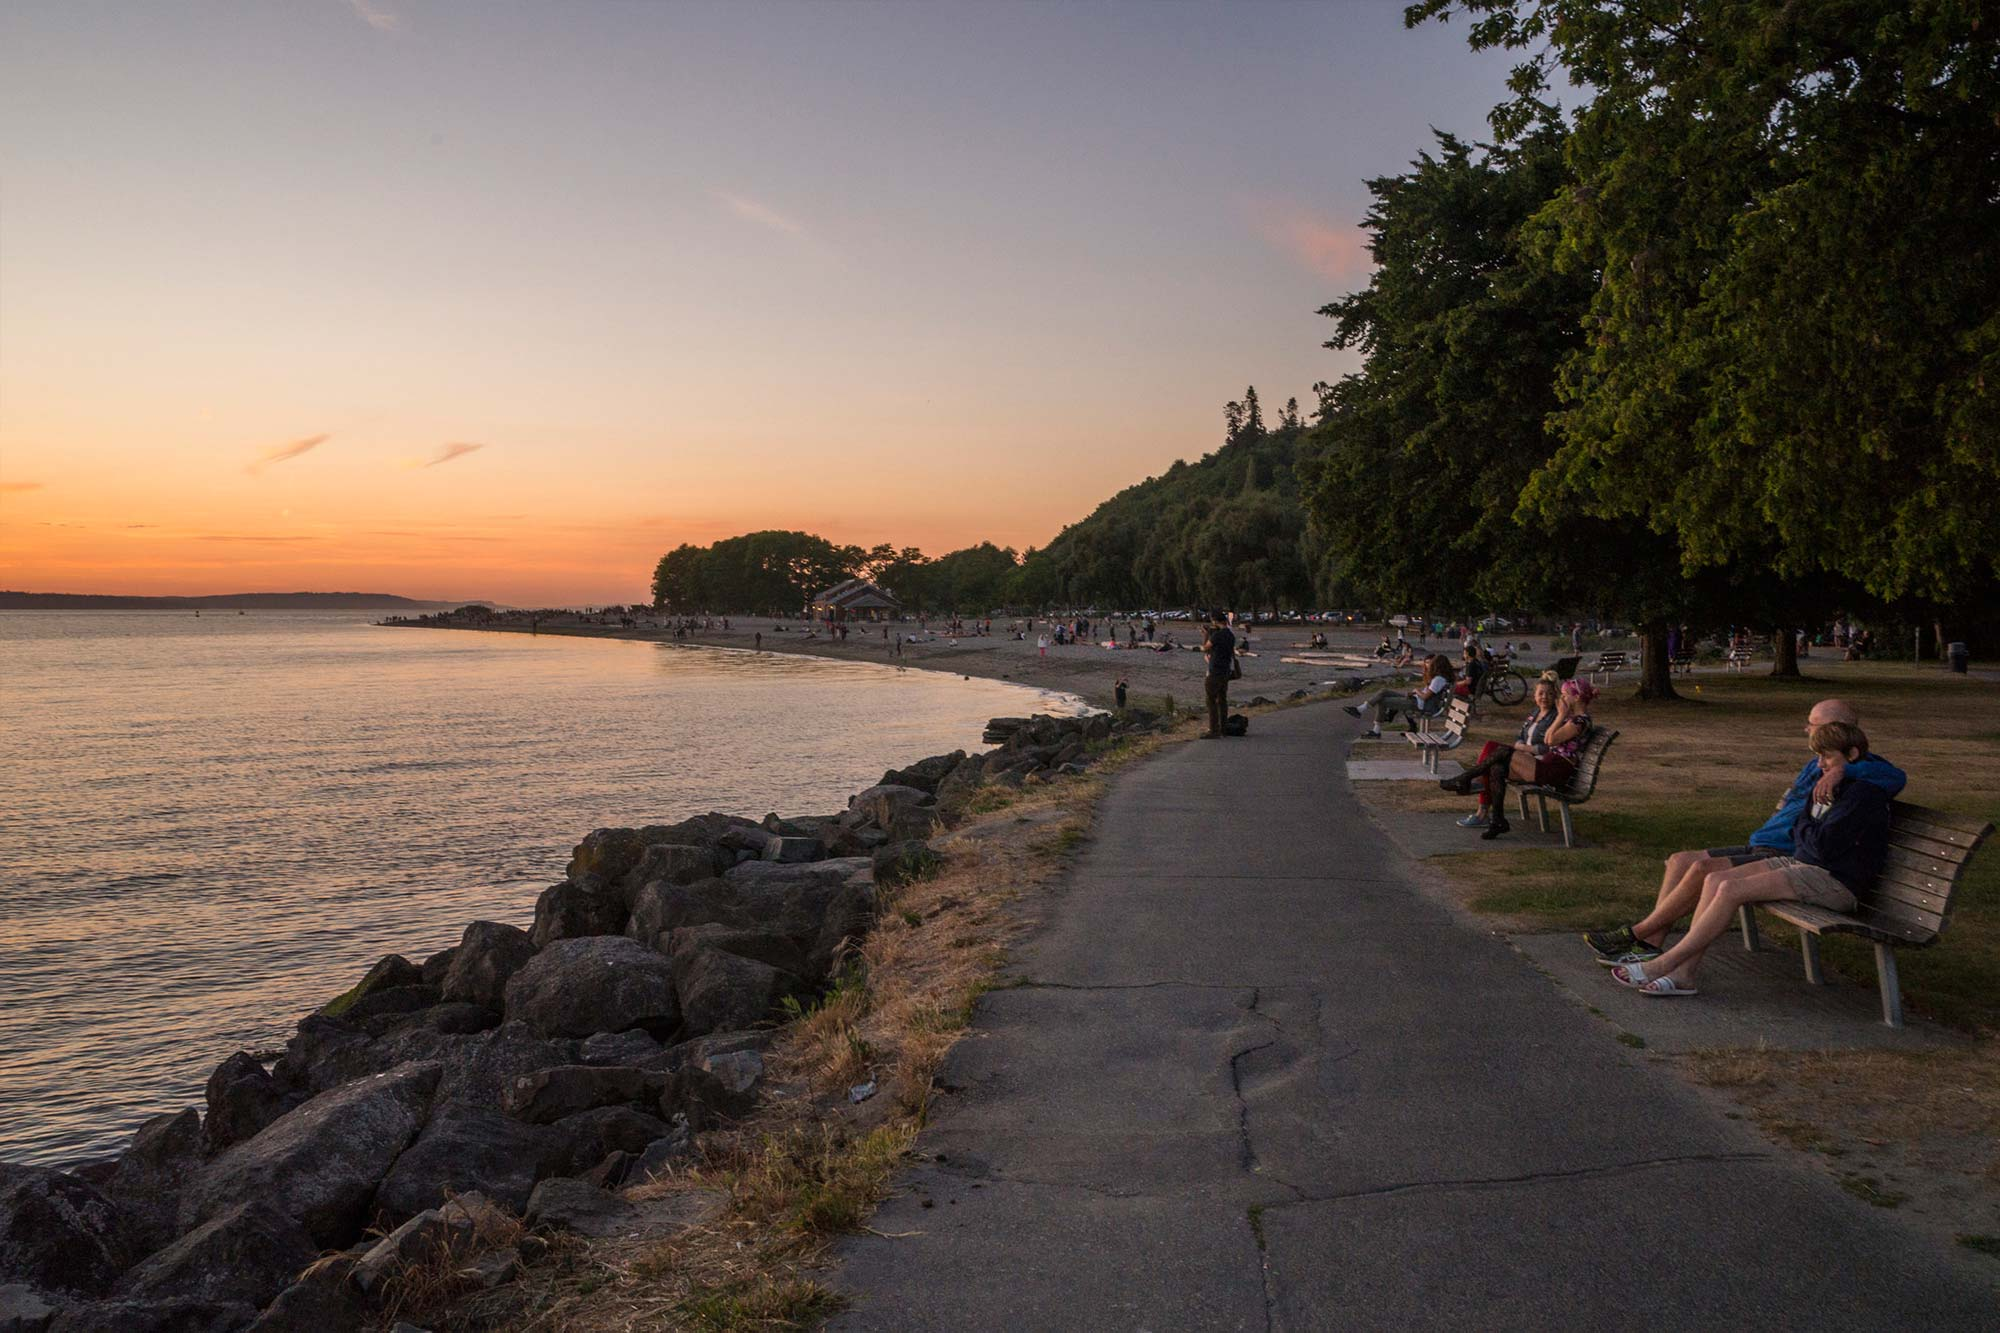 Mission bay park has many beaches that provide fire pits for bonfires. Golden Gardens Park - Parks | seattle.gov